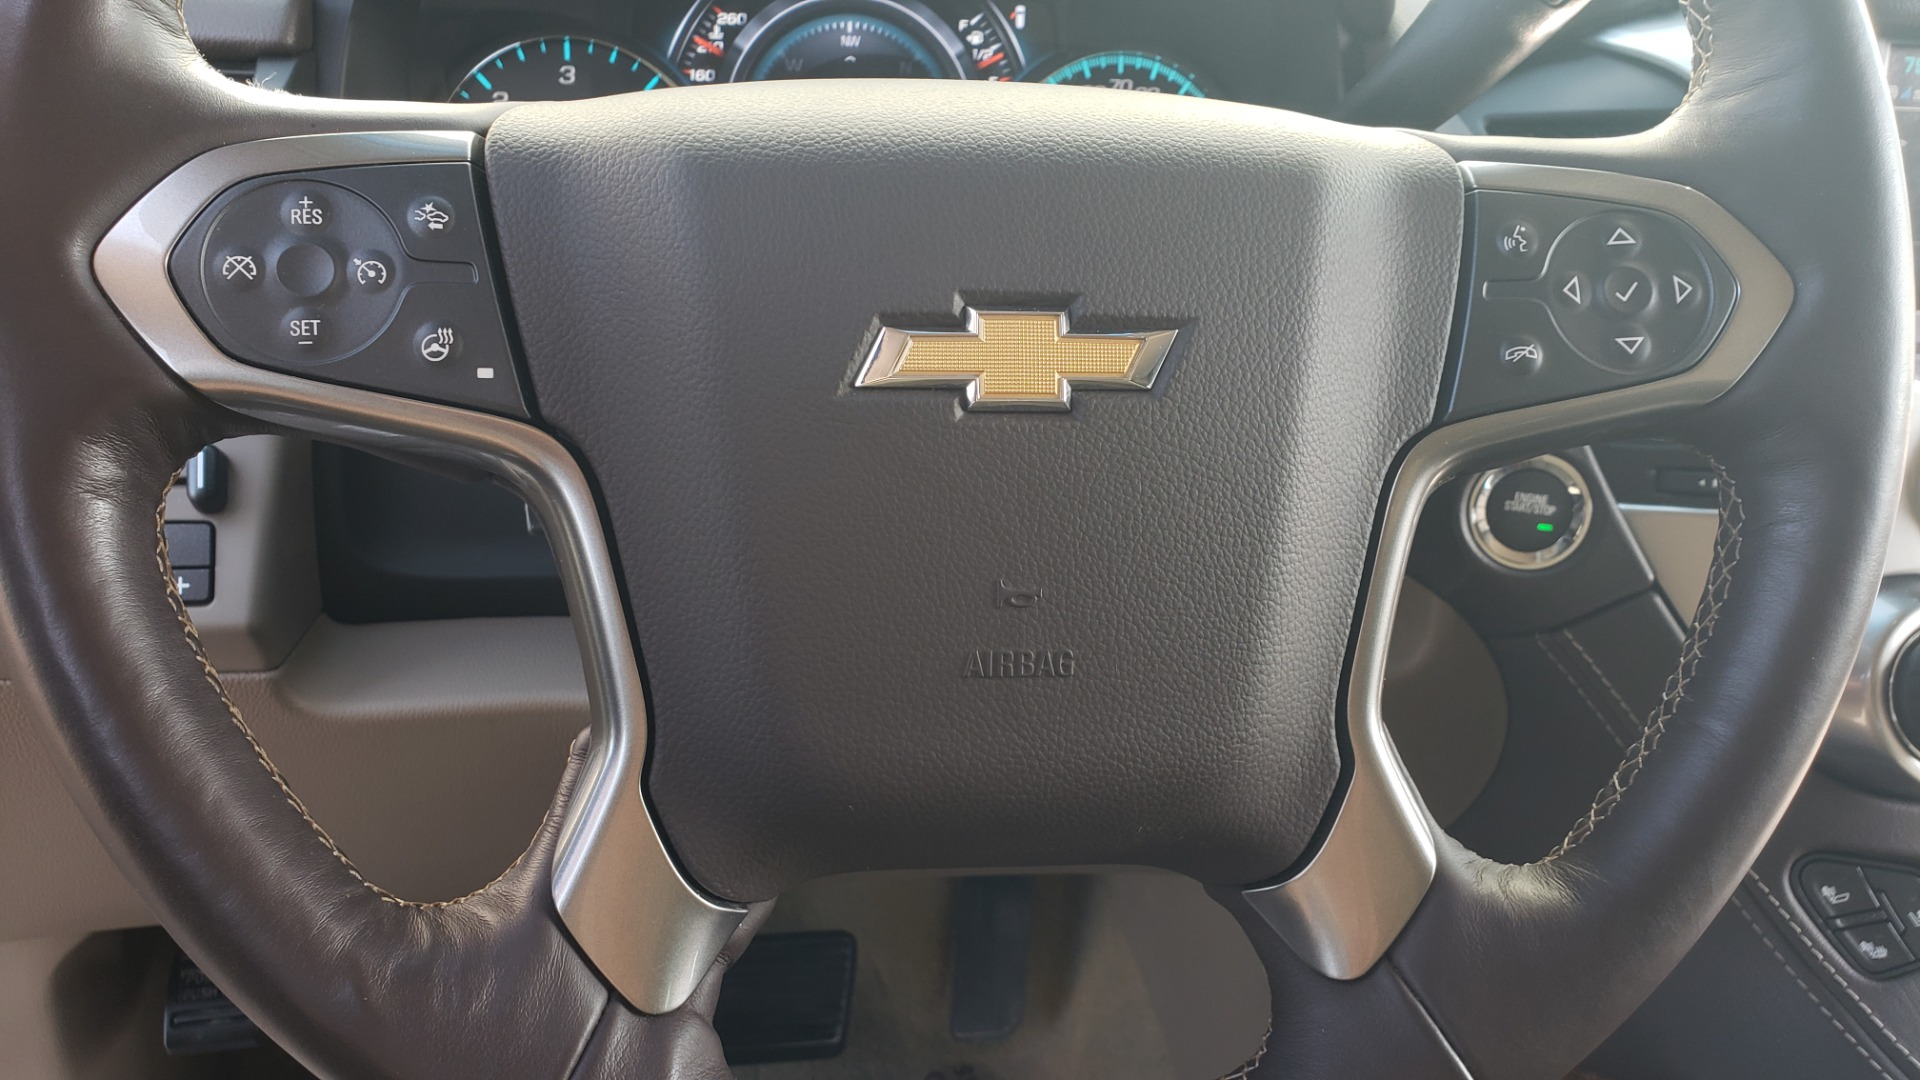 Used 2018 Chevrolet TAHOE PREMIER 4X4 / NAV / BOSE / SUNROOF / ENT SYS / 3-ROW / REARVIEW for sale $55,995 at Formula Imports in Charlotte NC 28227 47